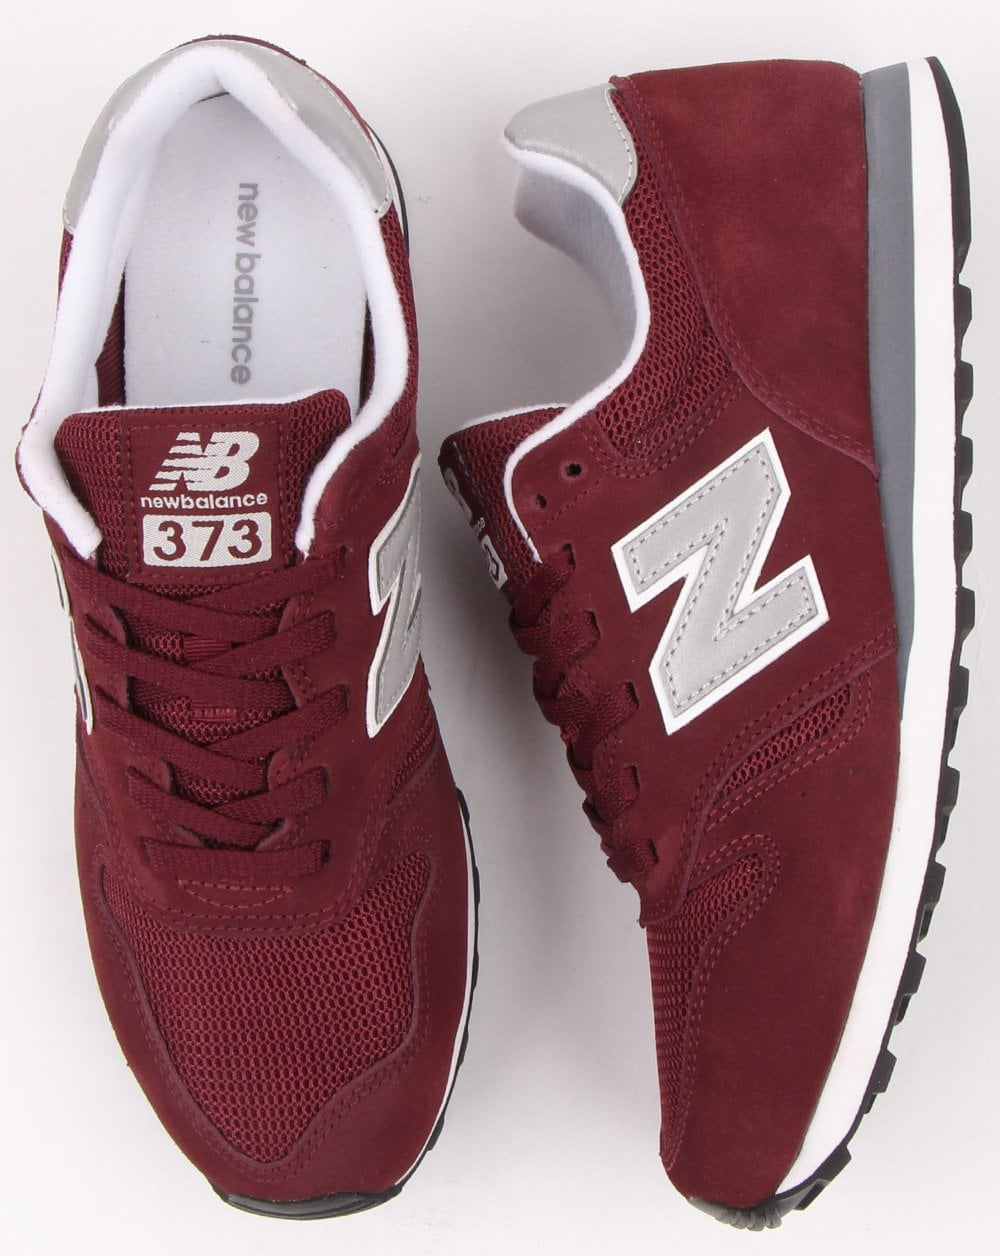 timeless design e10c2 b514e New Balance 373 Trainers Burgundy